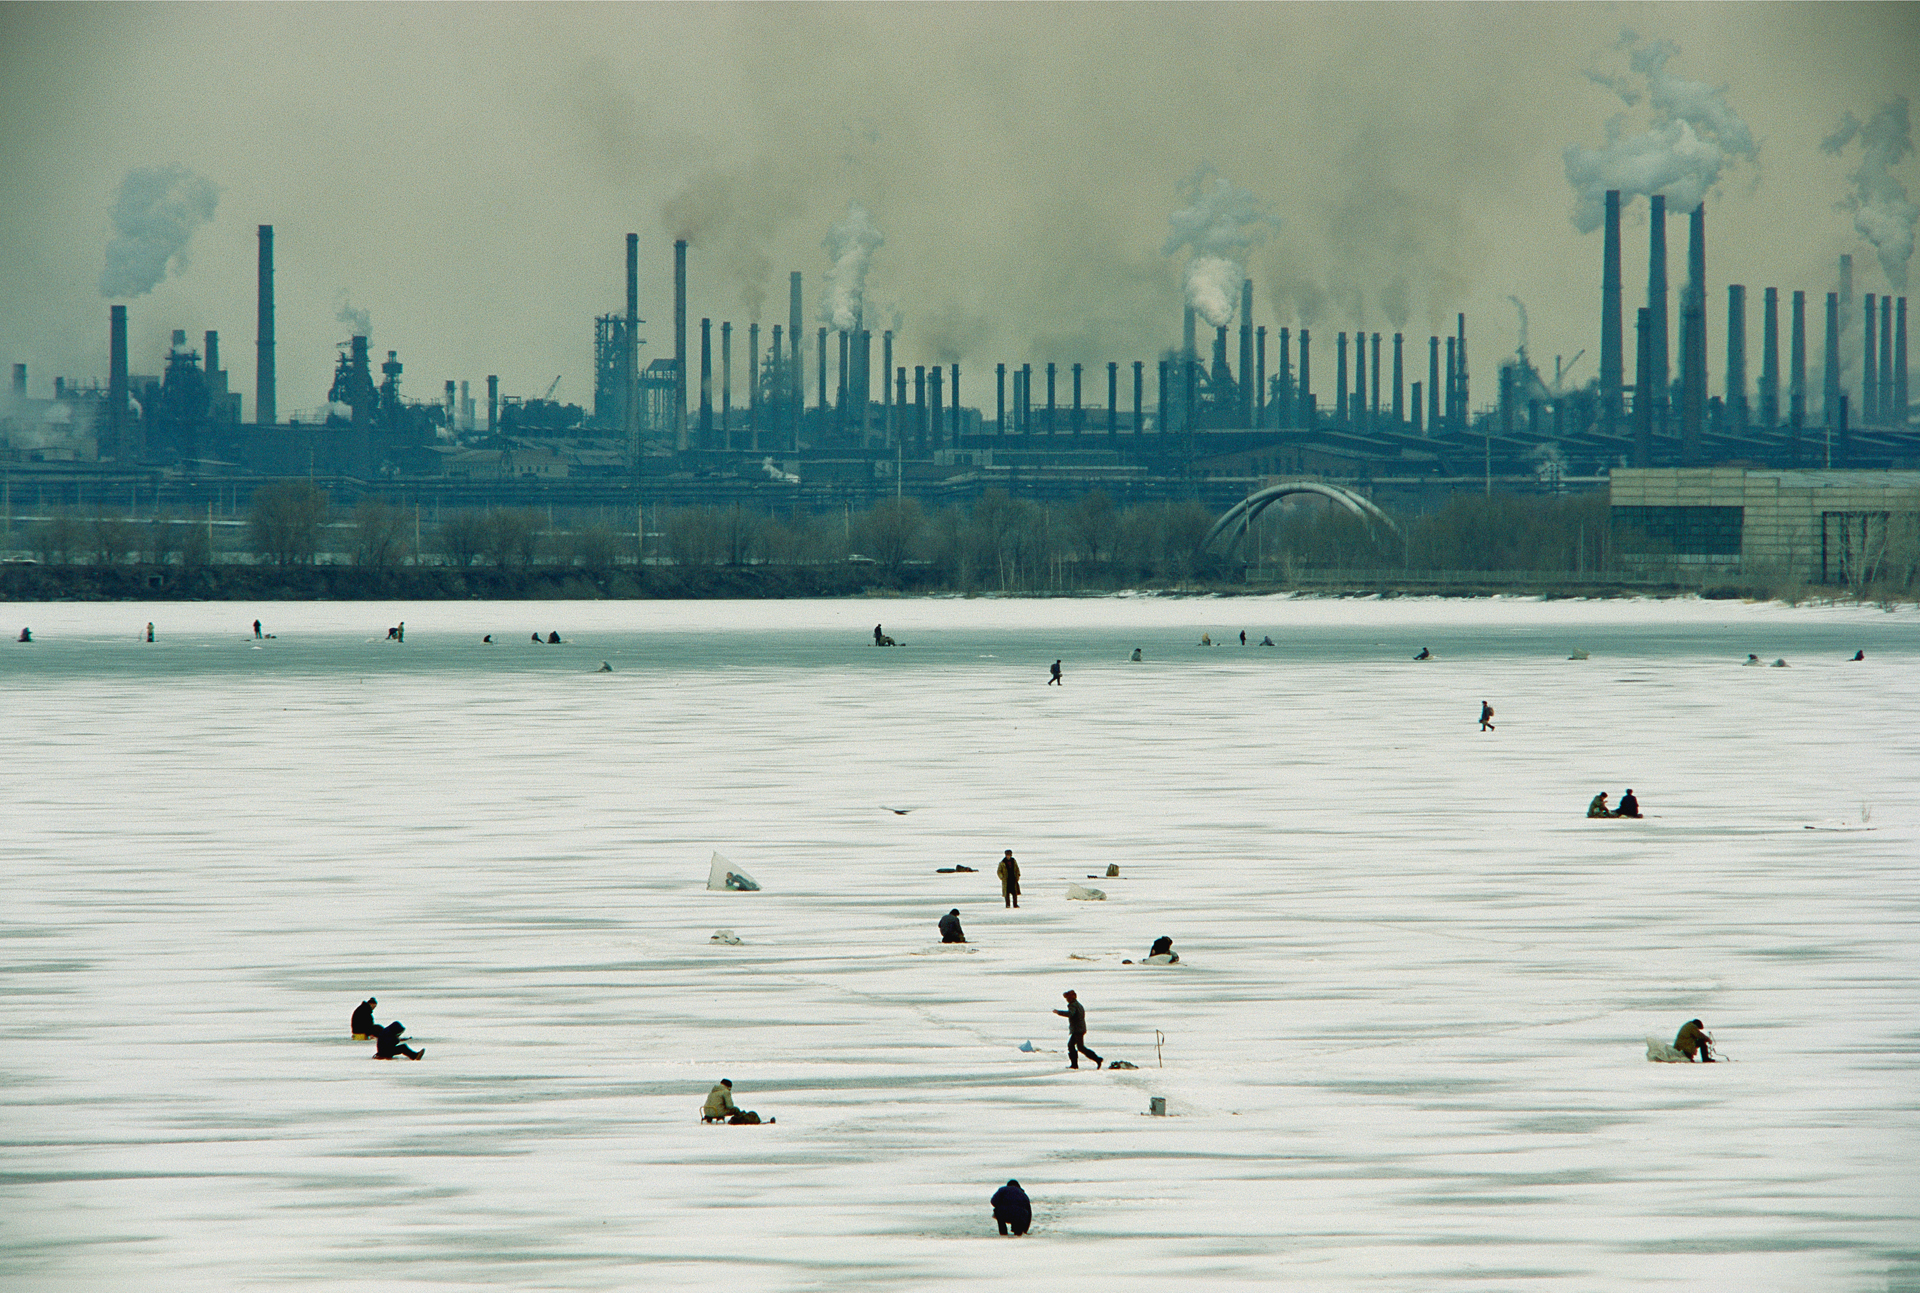 In winter, men drill fishing holes in the ice of the Ural River. Knowing that the river is badly polluted by the Steel Works looming behind them, they often sell their catch to markets rather than consume it themselves.  Magnitogorsk, Russia